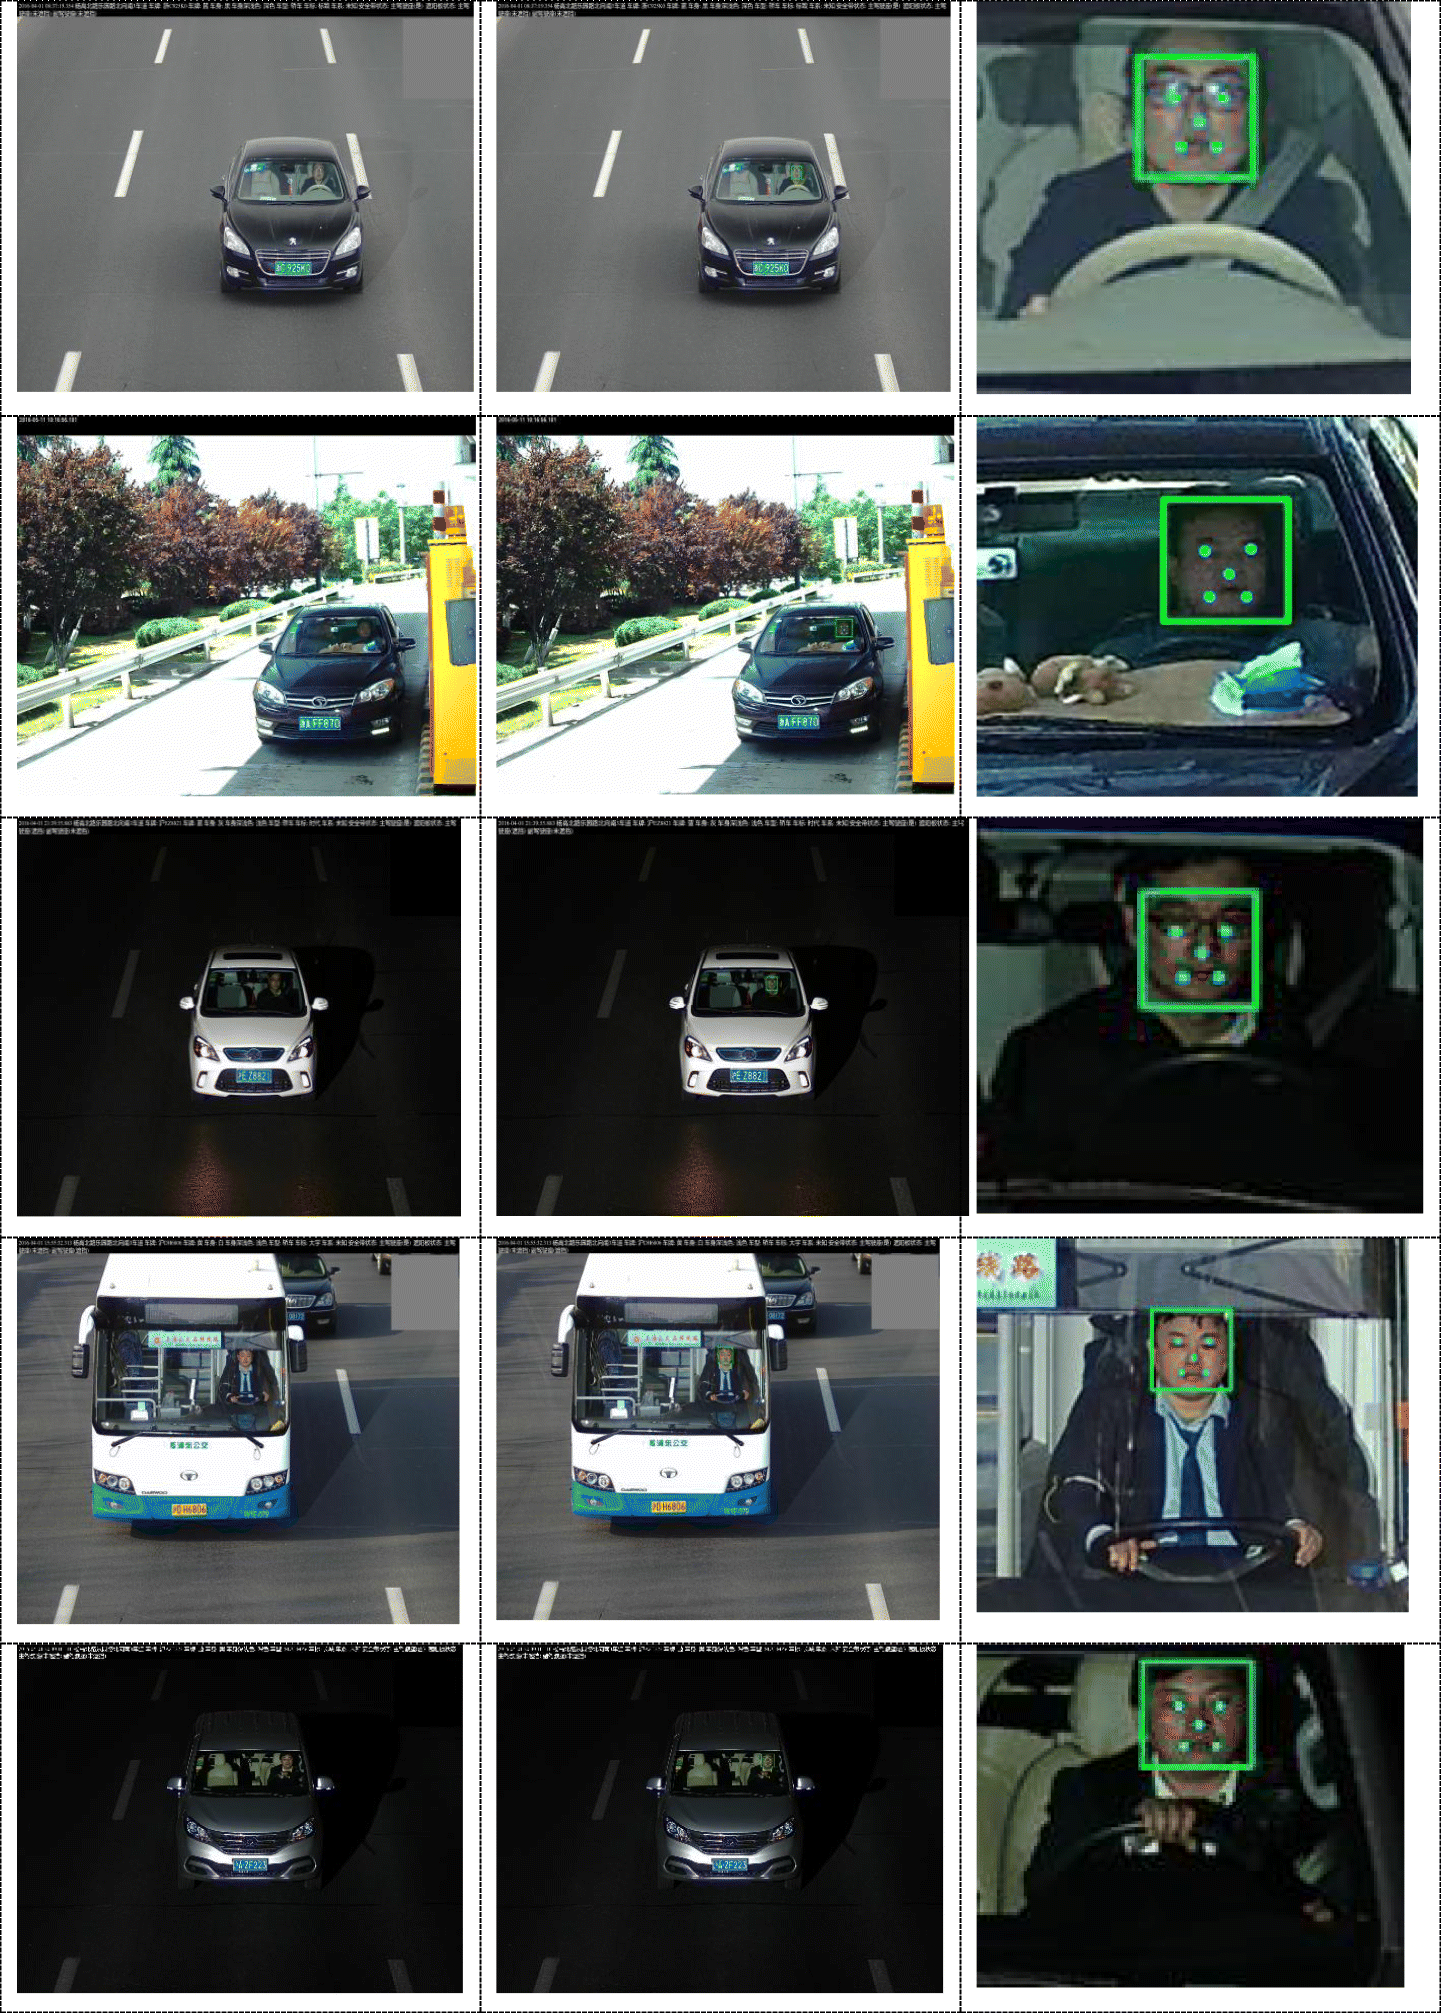 Face detection and alignment method for driver on highroad based on